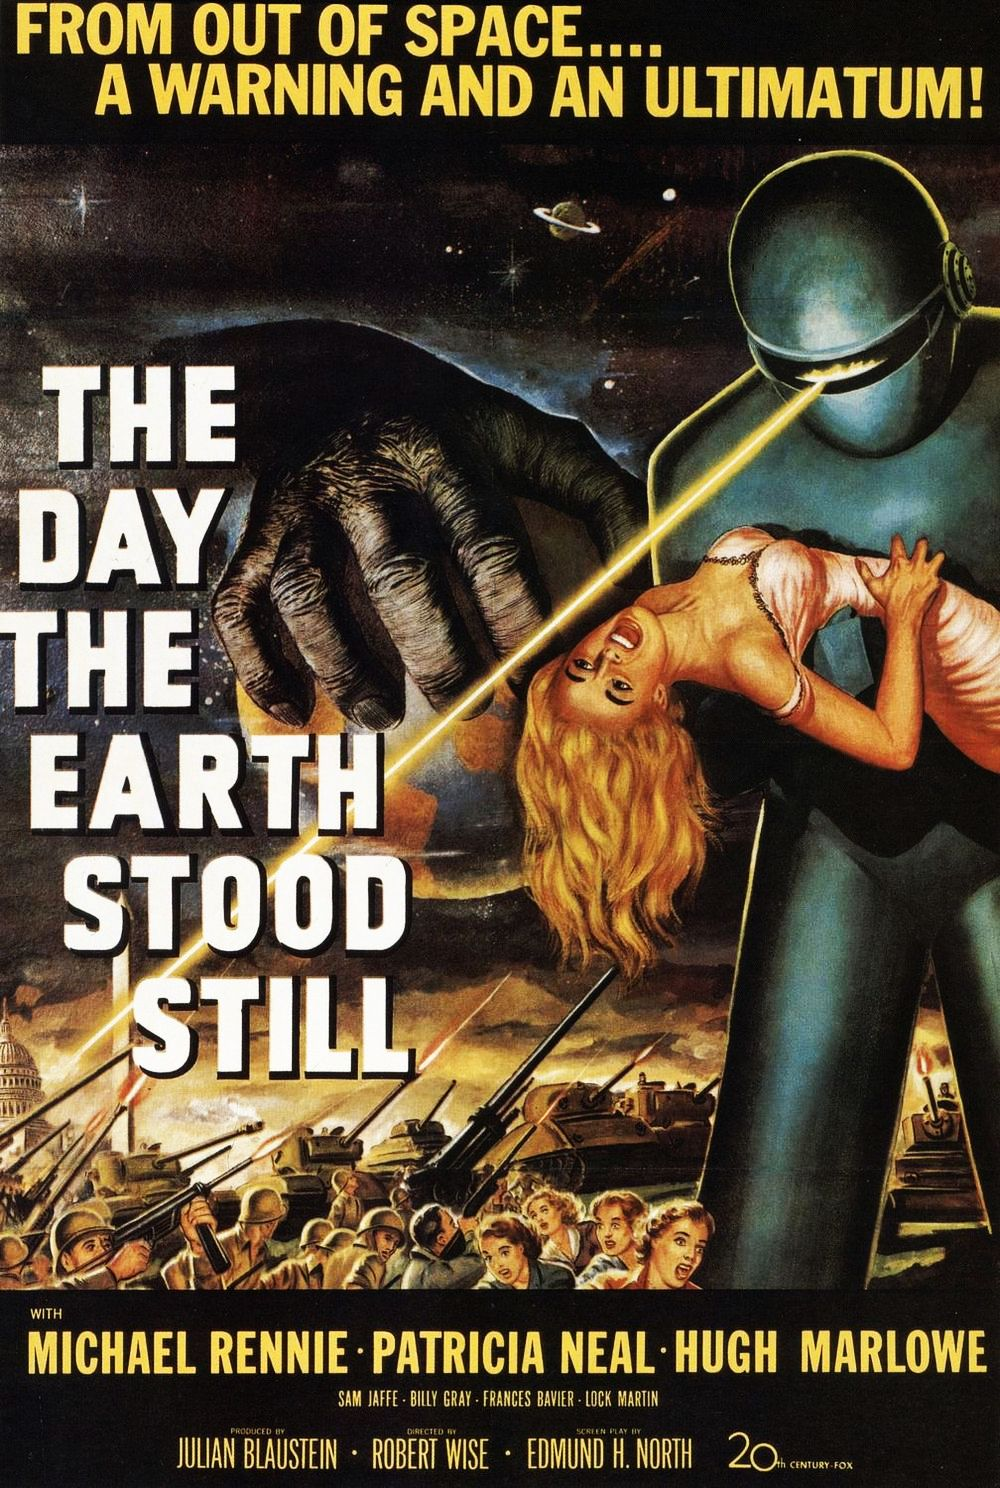 Michael Rennie was ill the day the earth stood still. But he told us where we stand.